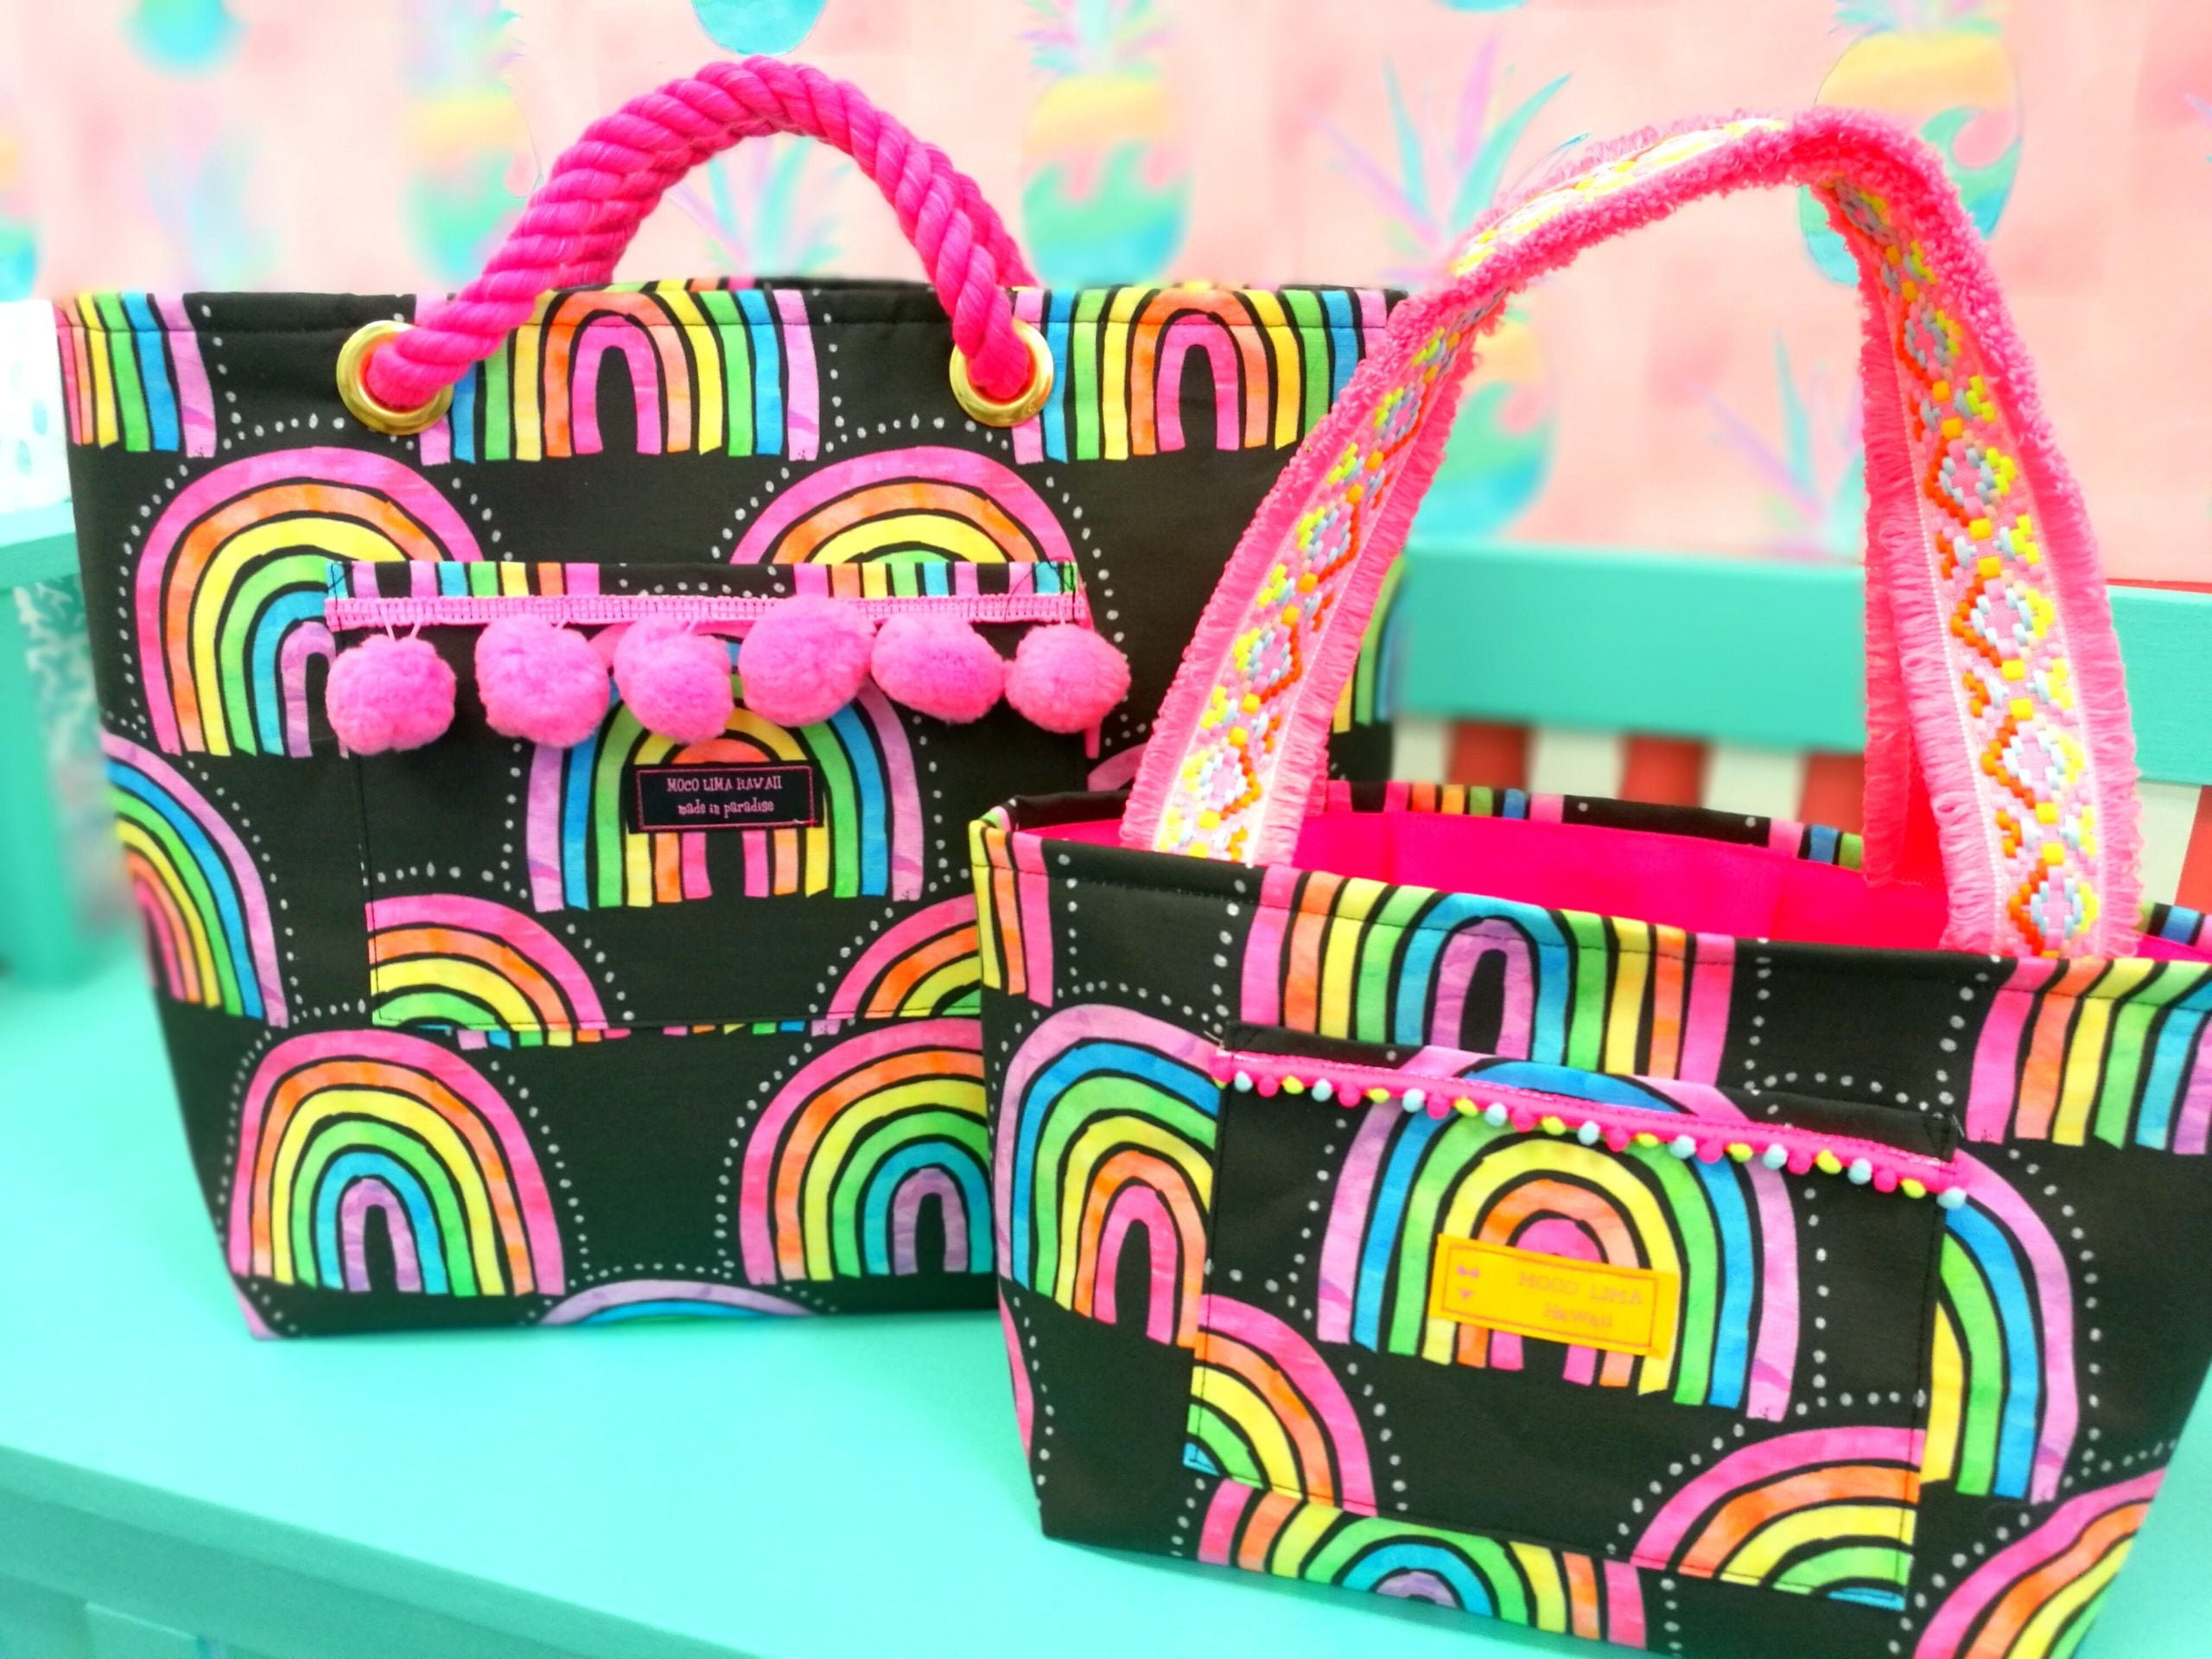 Big Black Rainbow Tote Bag